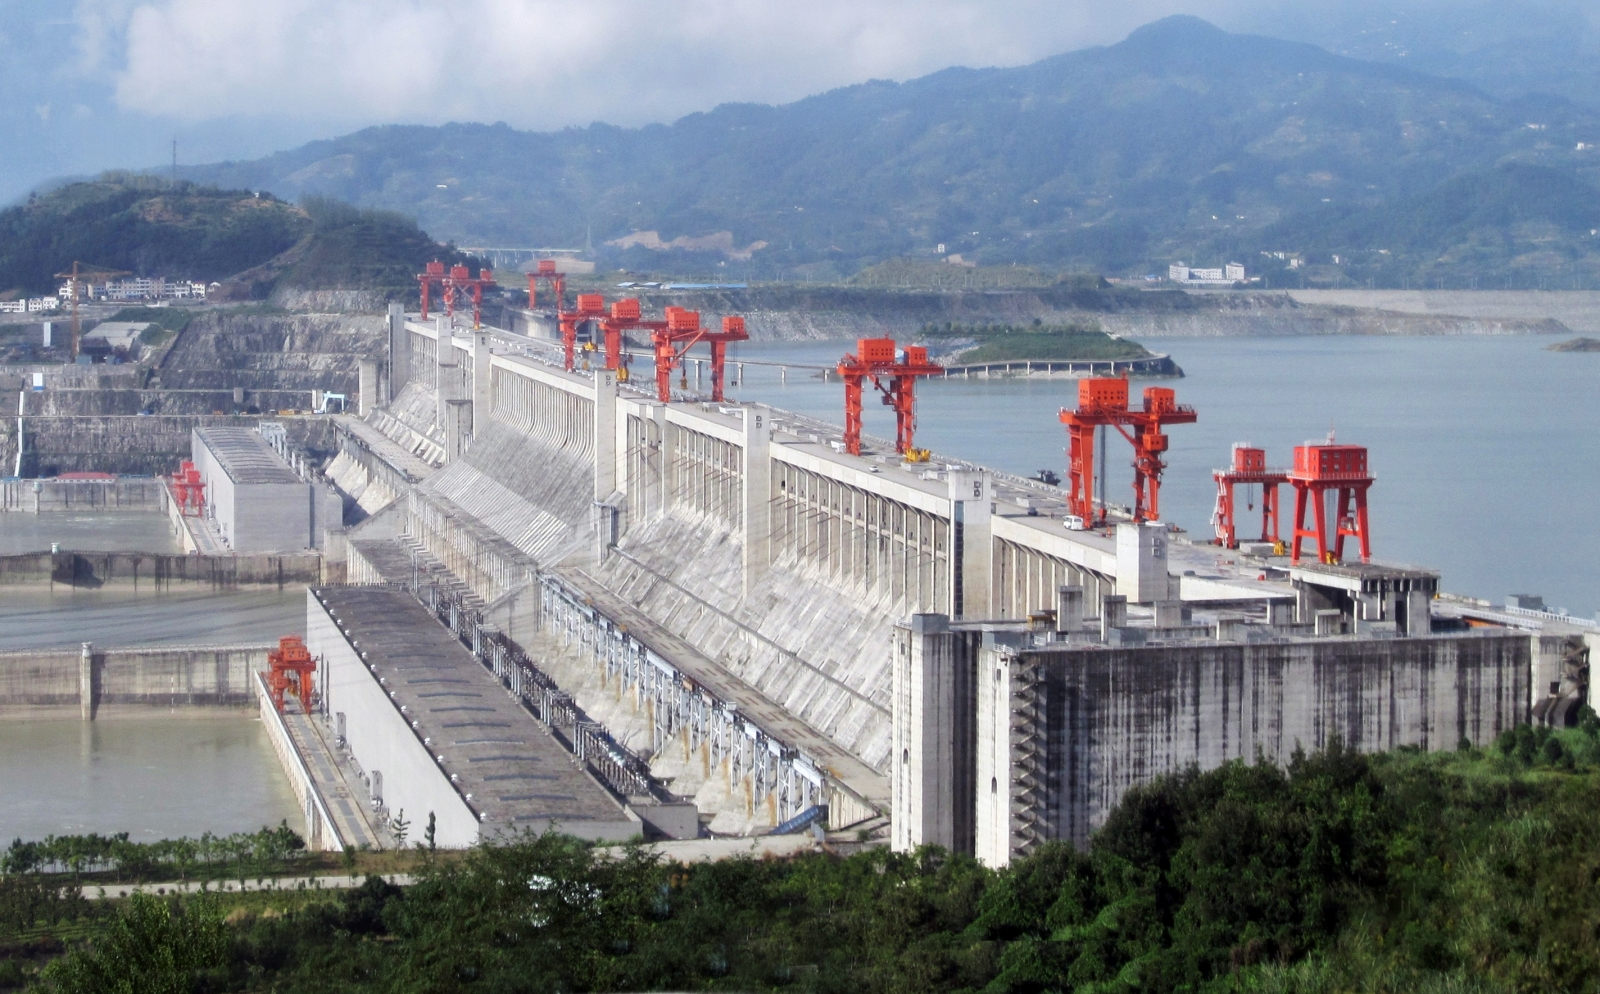 """ThreeGorgesDam-China2009"" by Source file: Le Grand PortageDerivative work: Rehman"